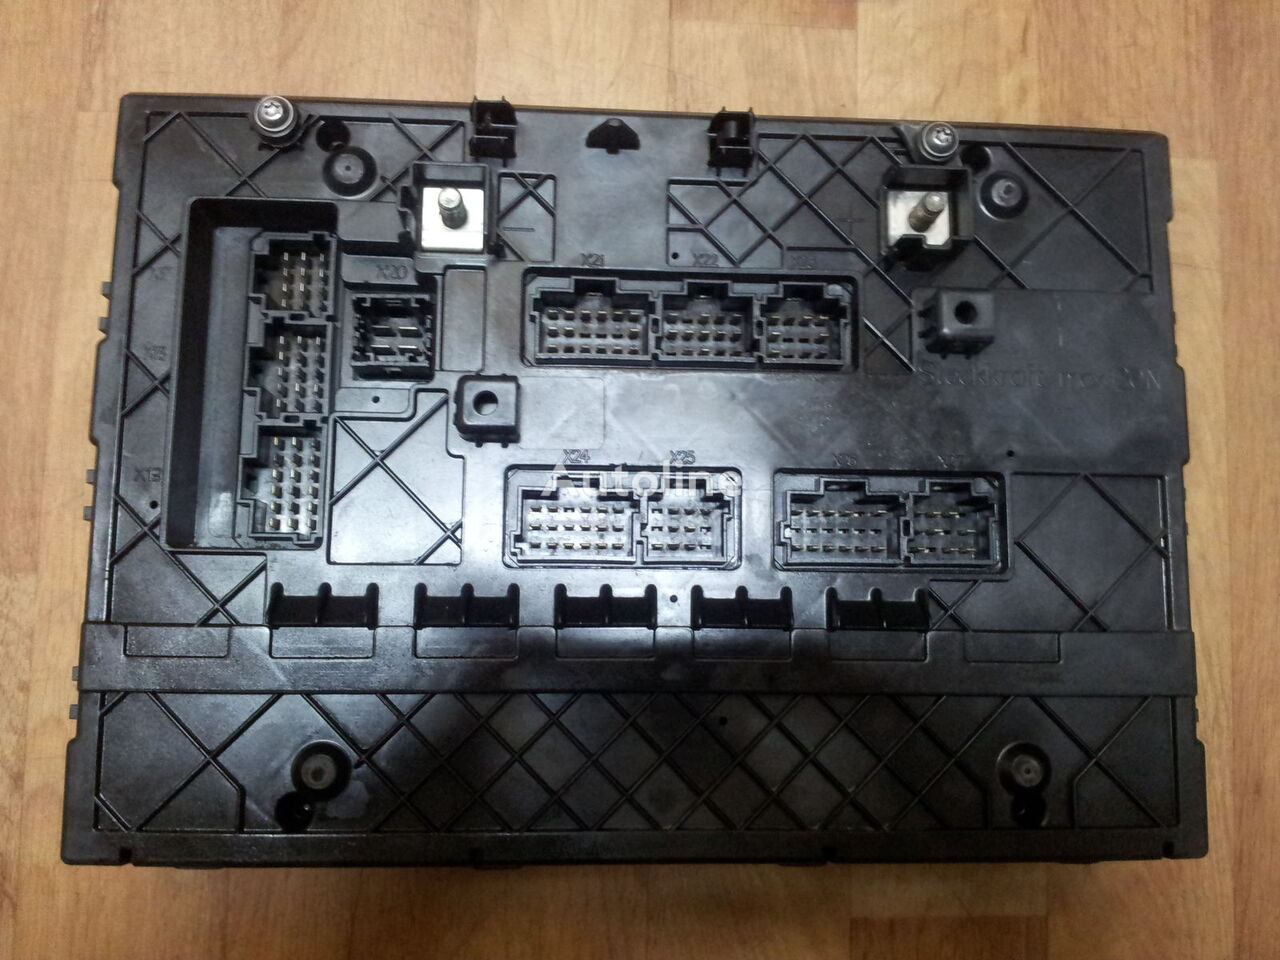 77A0DCB Actros Gm Fuse Box | Wiring ResourcesWiring Resources